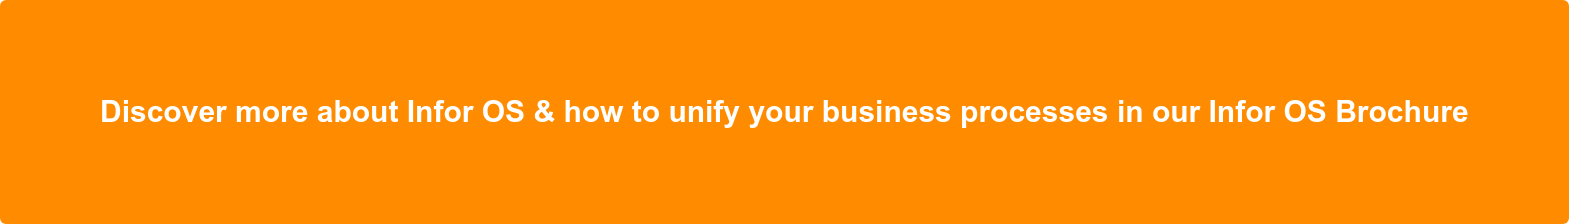 Discover more about Infor OS & how to unify your business processes in our  Infor OS Brochure